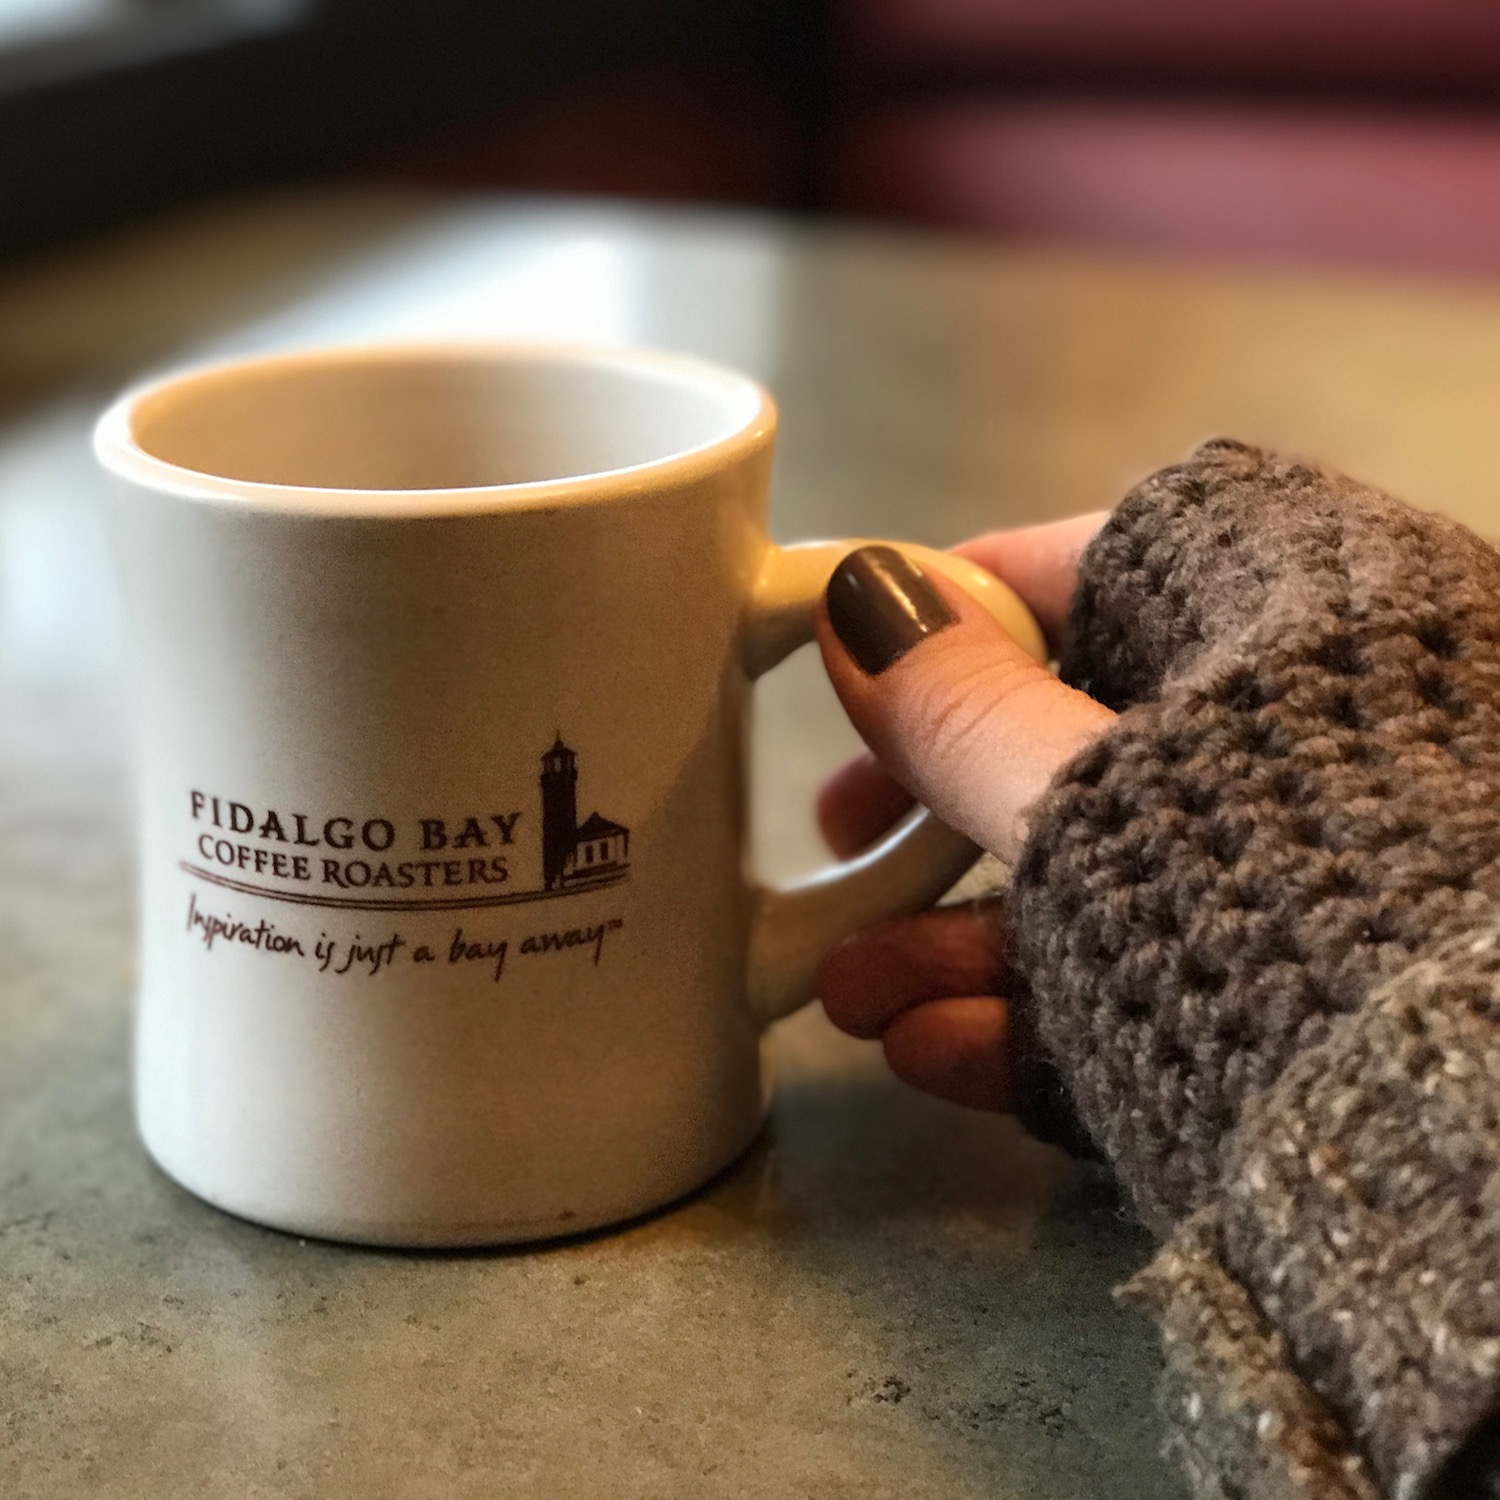 Grab a coffee and let's have a chat.